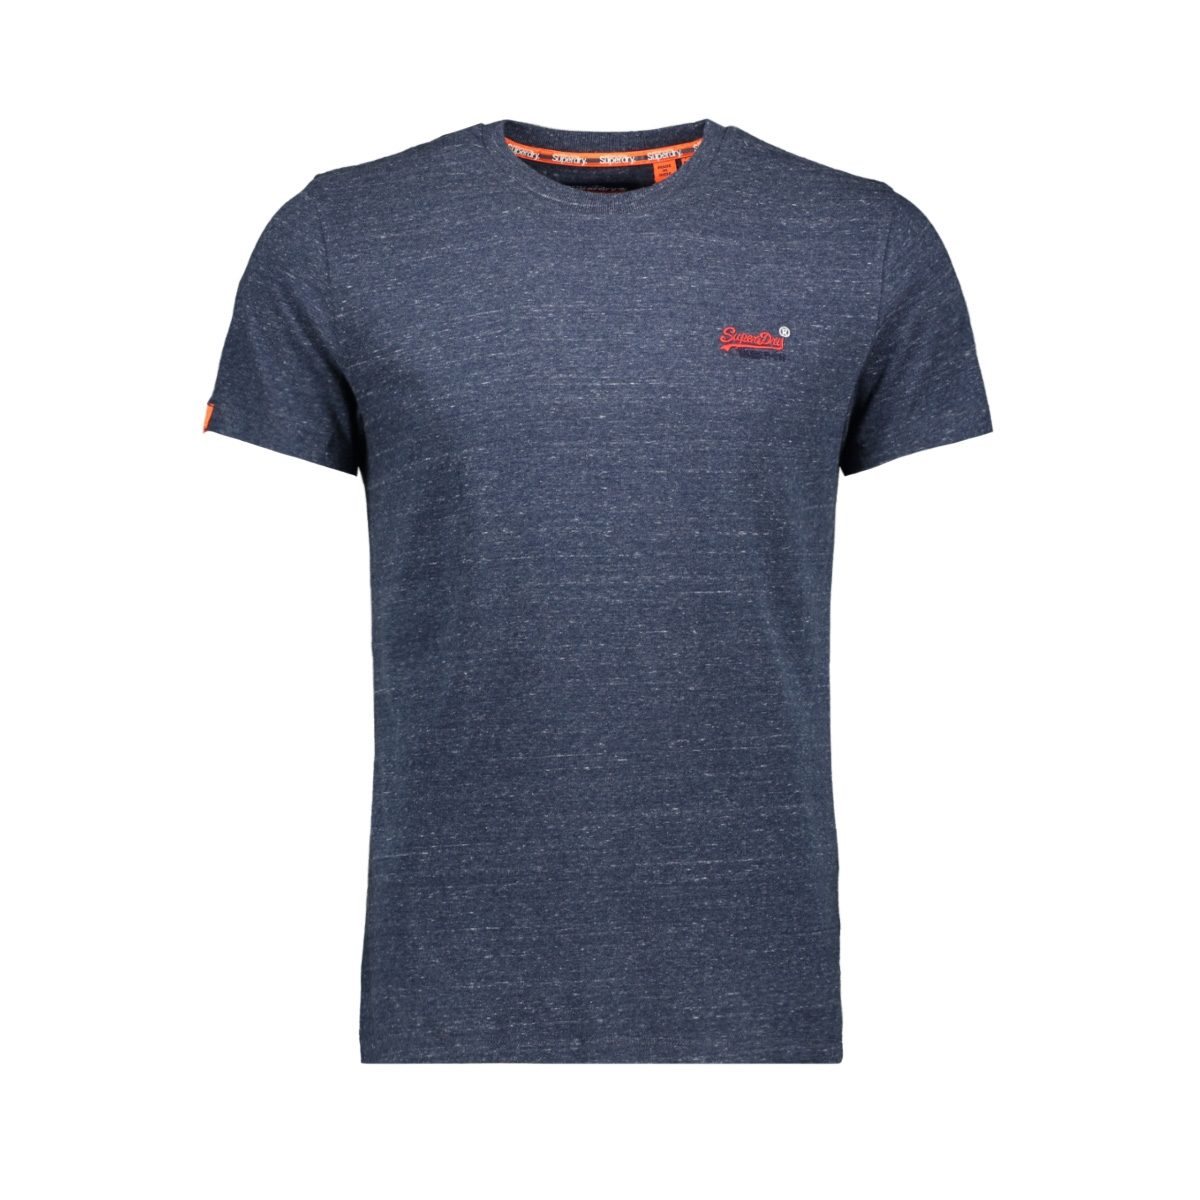 ol vintage embroidery m1000020a superdry t-shirt creek navy heather